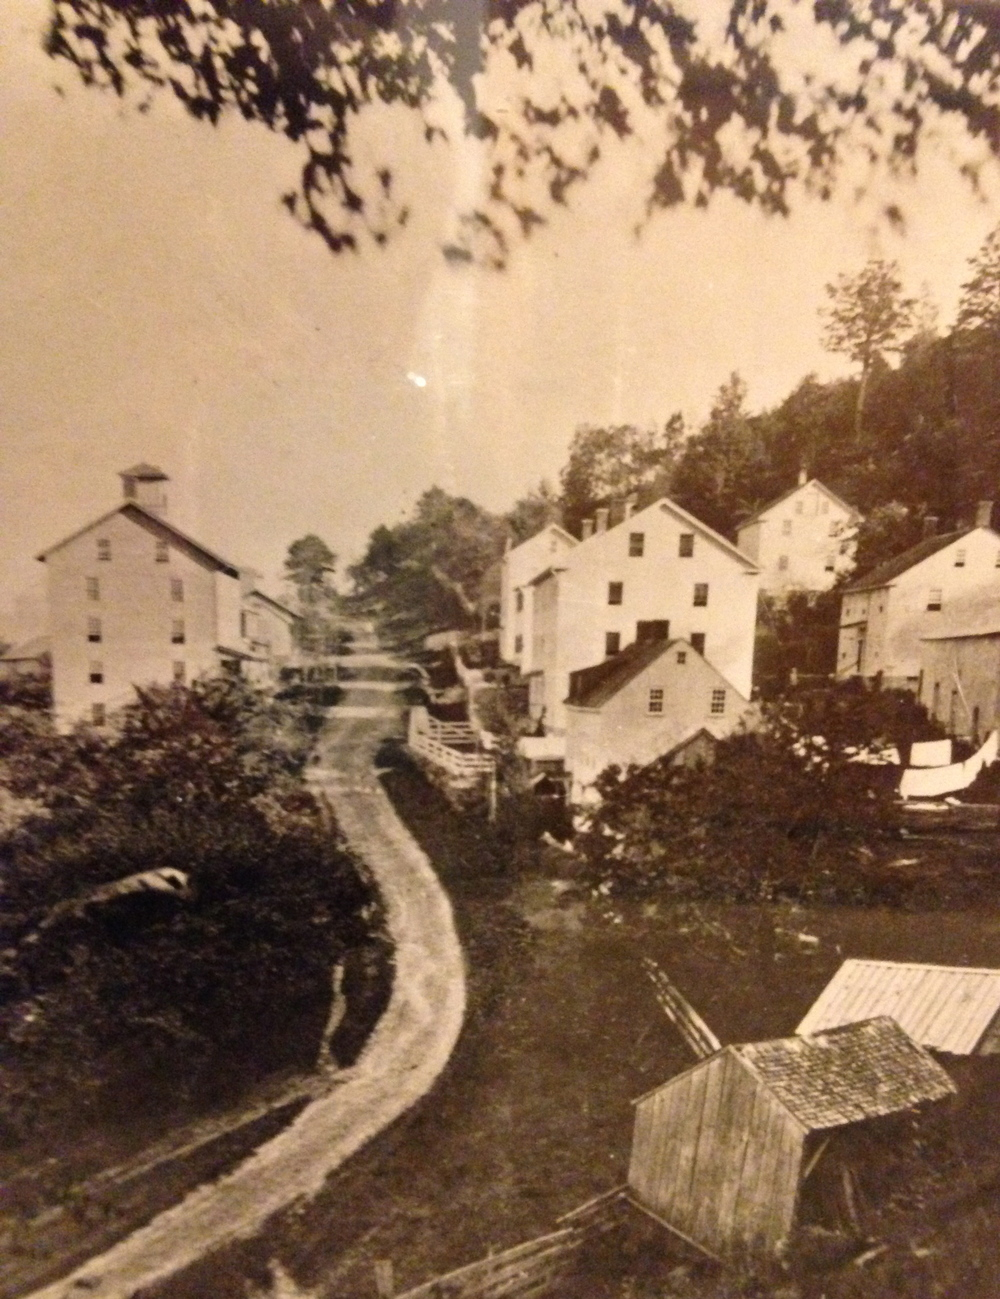 Local Shaker settlement (date unknown)